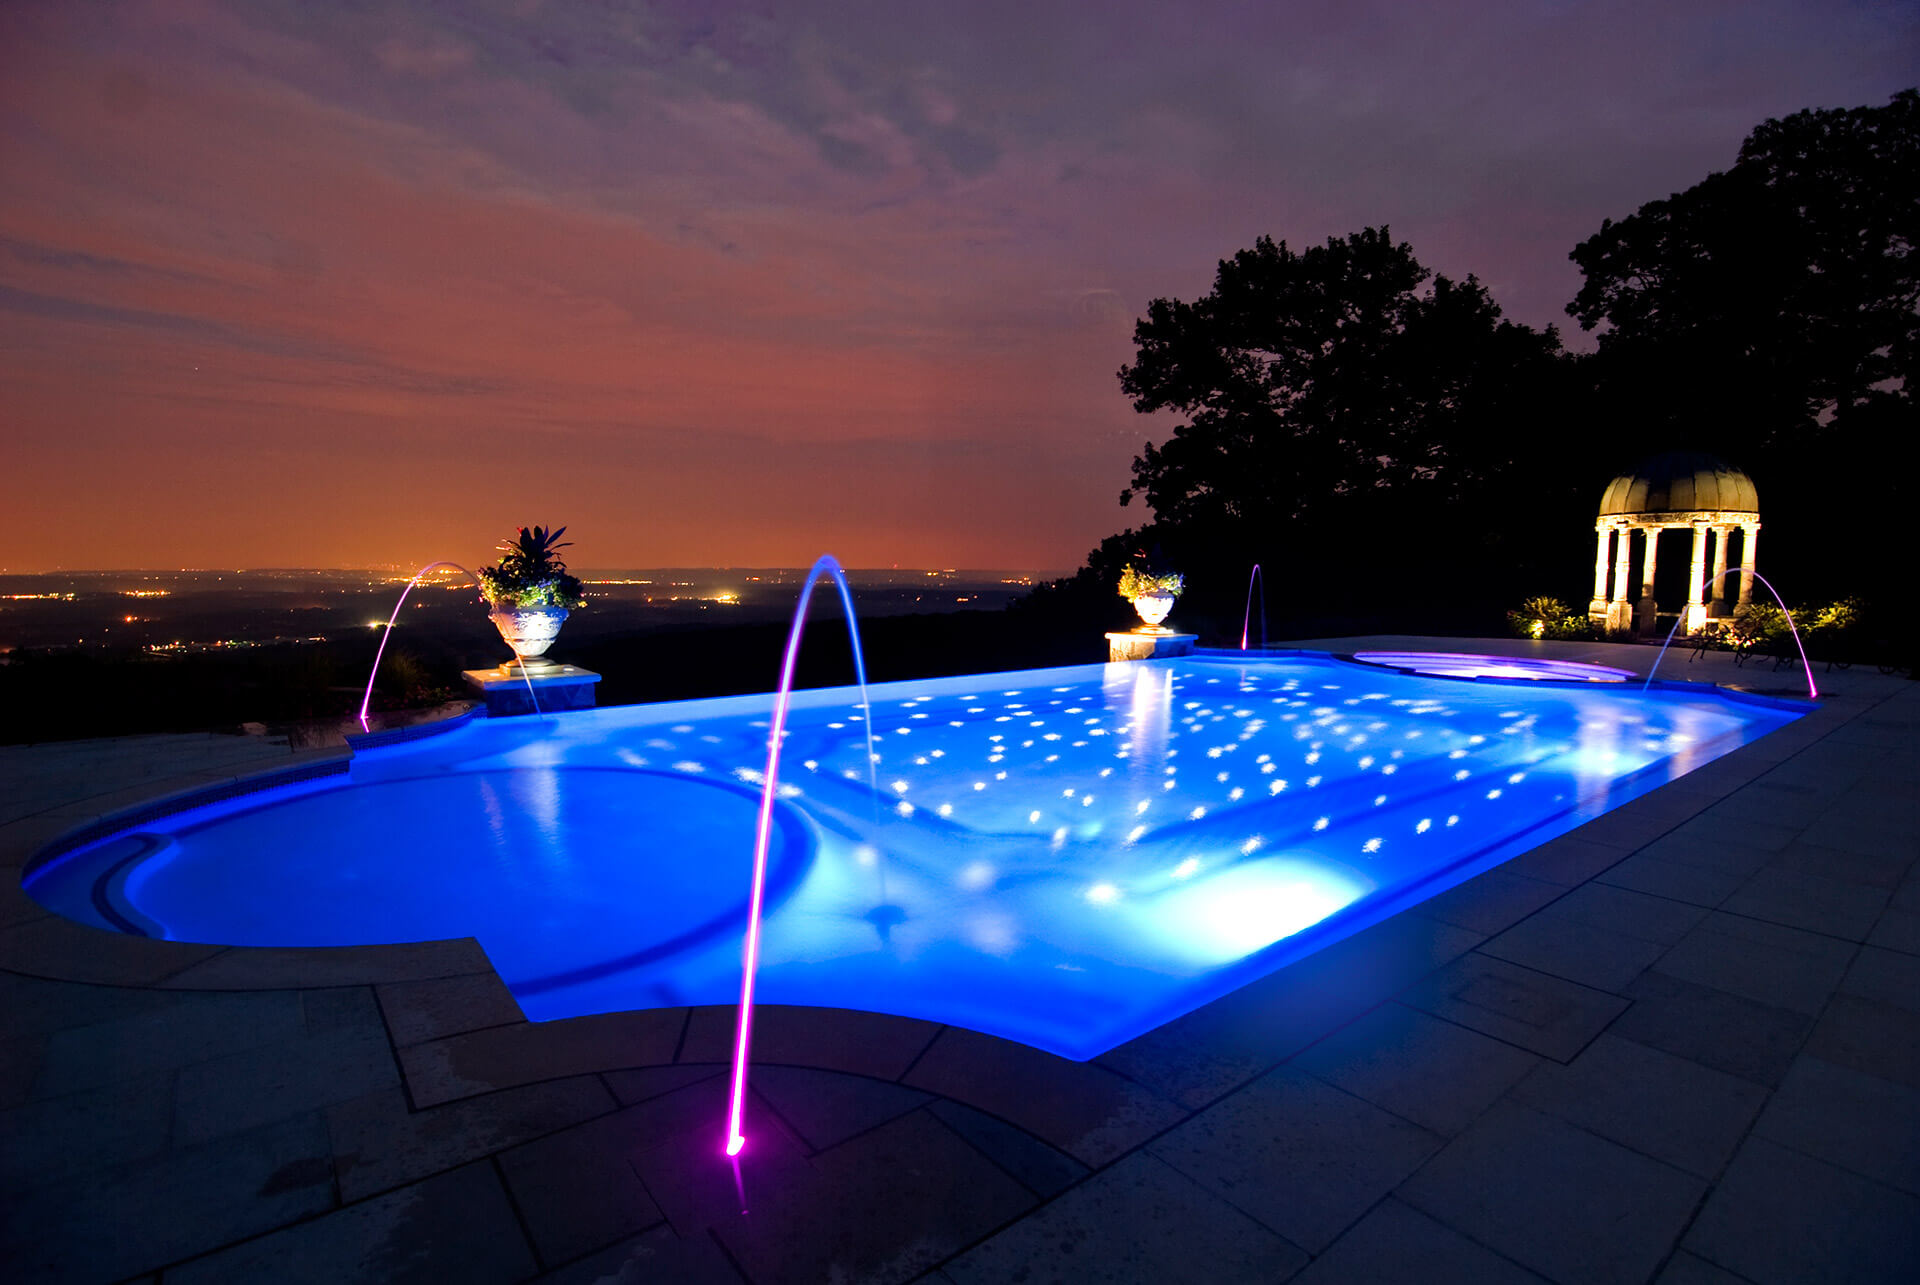 Custom Deck Jet Swimming Pool with Blue Lighting